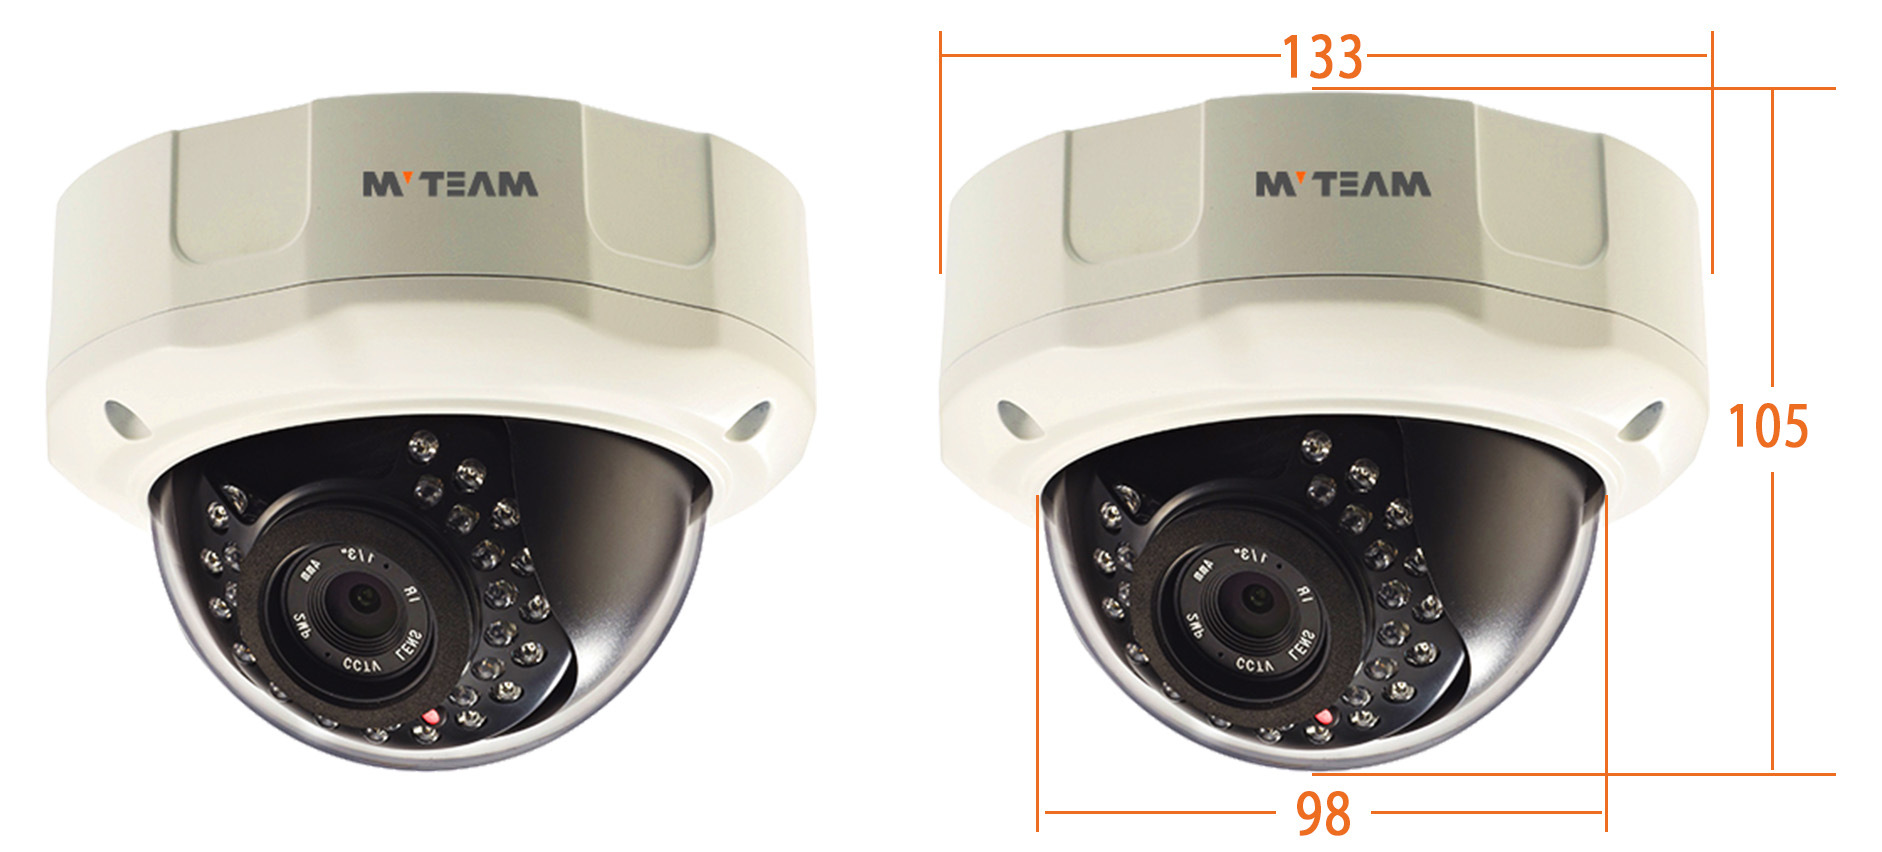 Hot New Sell 1.0 Megapixel 720p Cheap Megapixel Dome CCD Camera FCC, CE, RoHS Certification Mvt-Tan26n